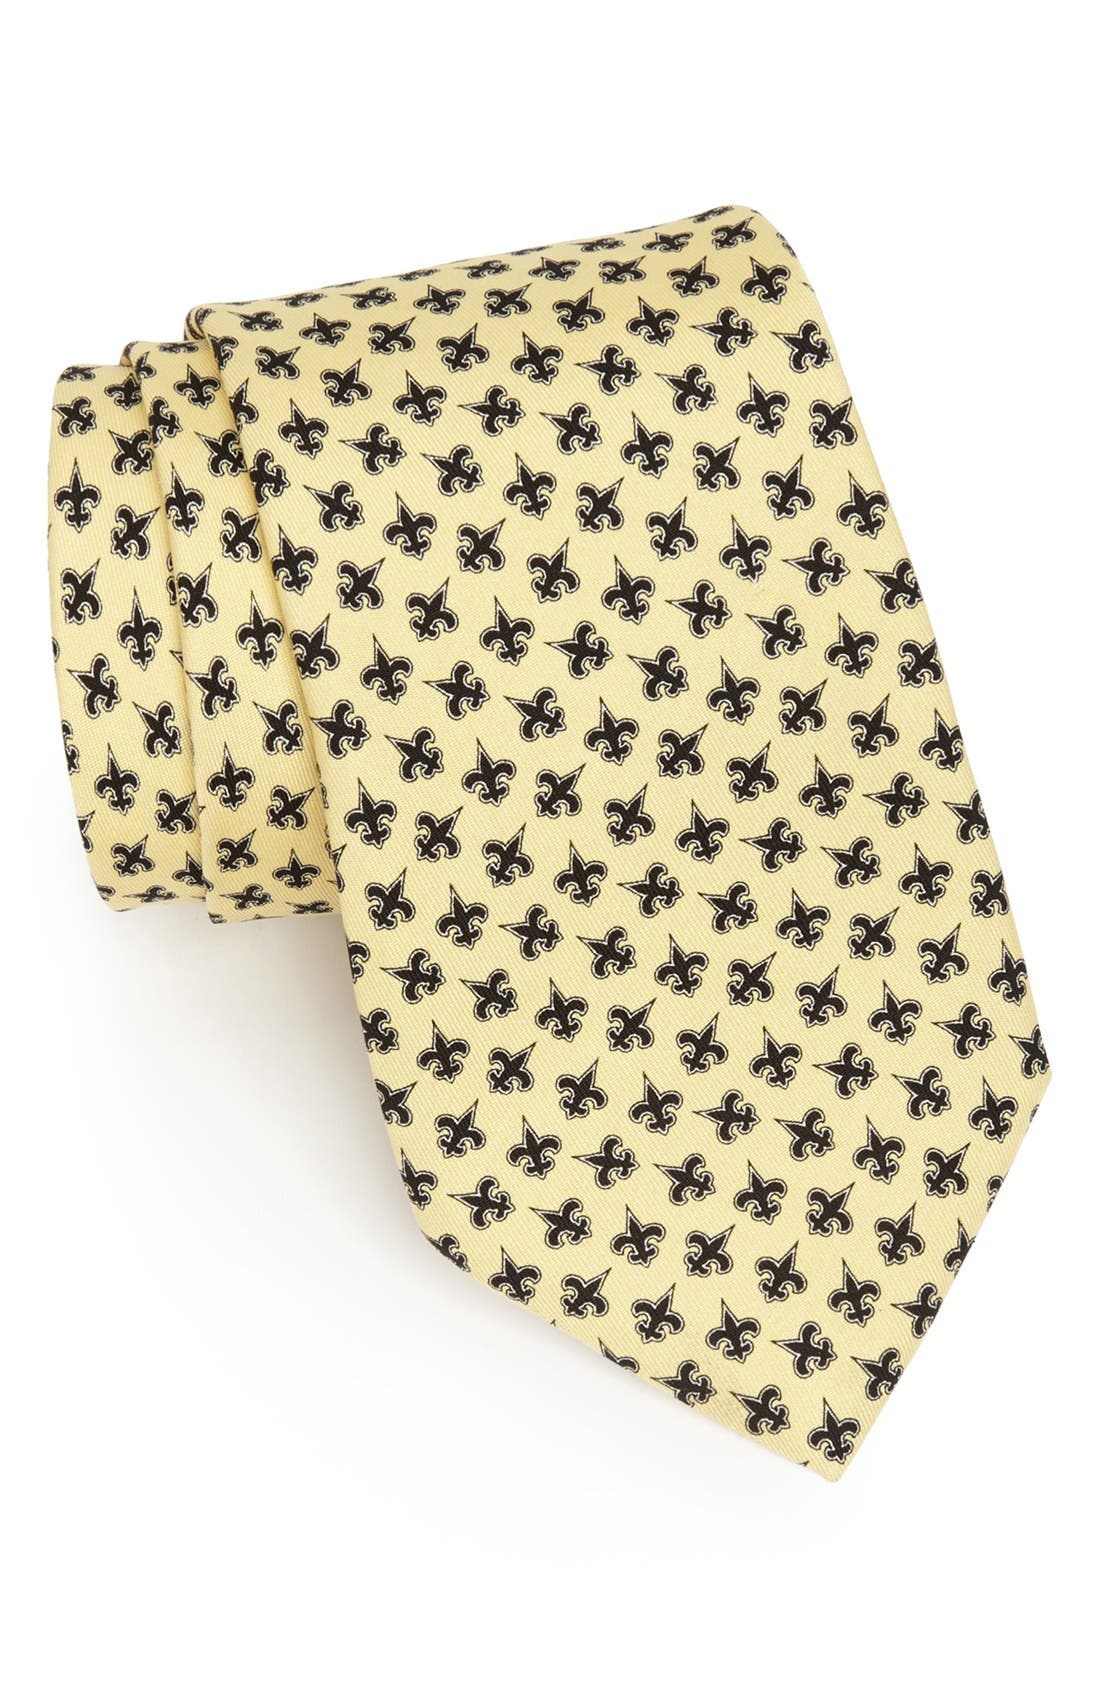 Alternate Image 1 Selected - Vineyard Vines New Orleans Saints Print Tie